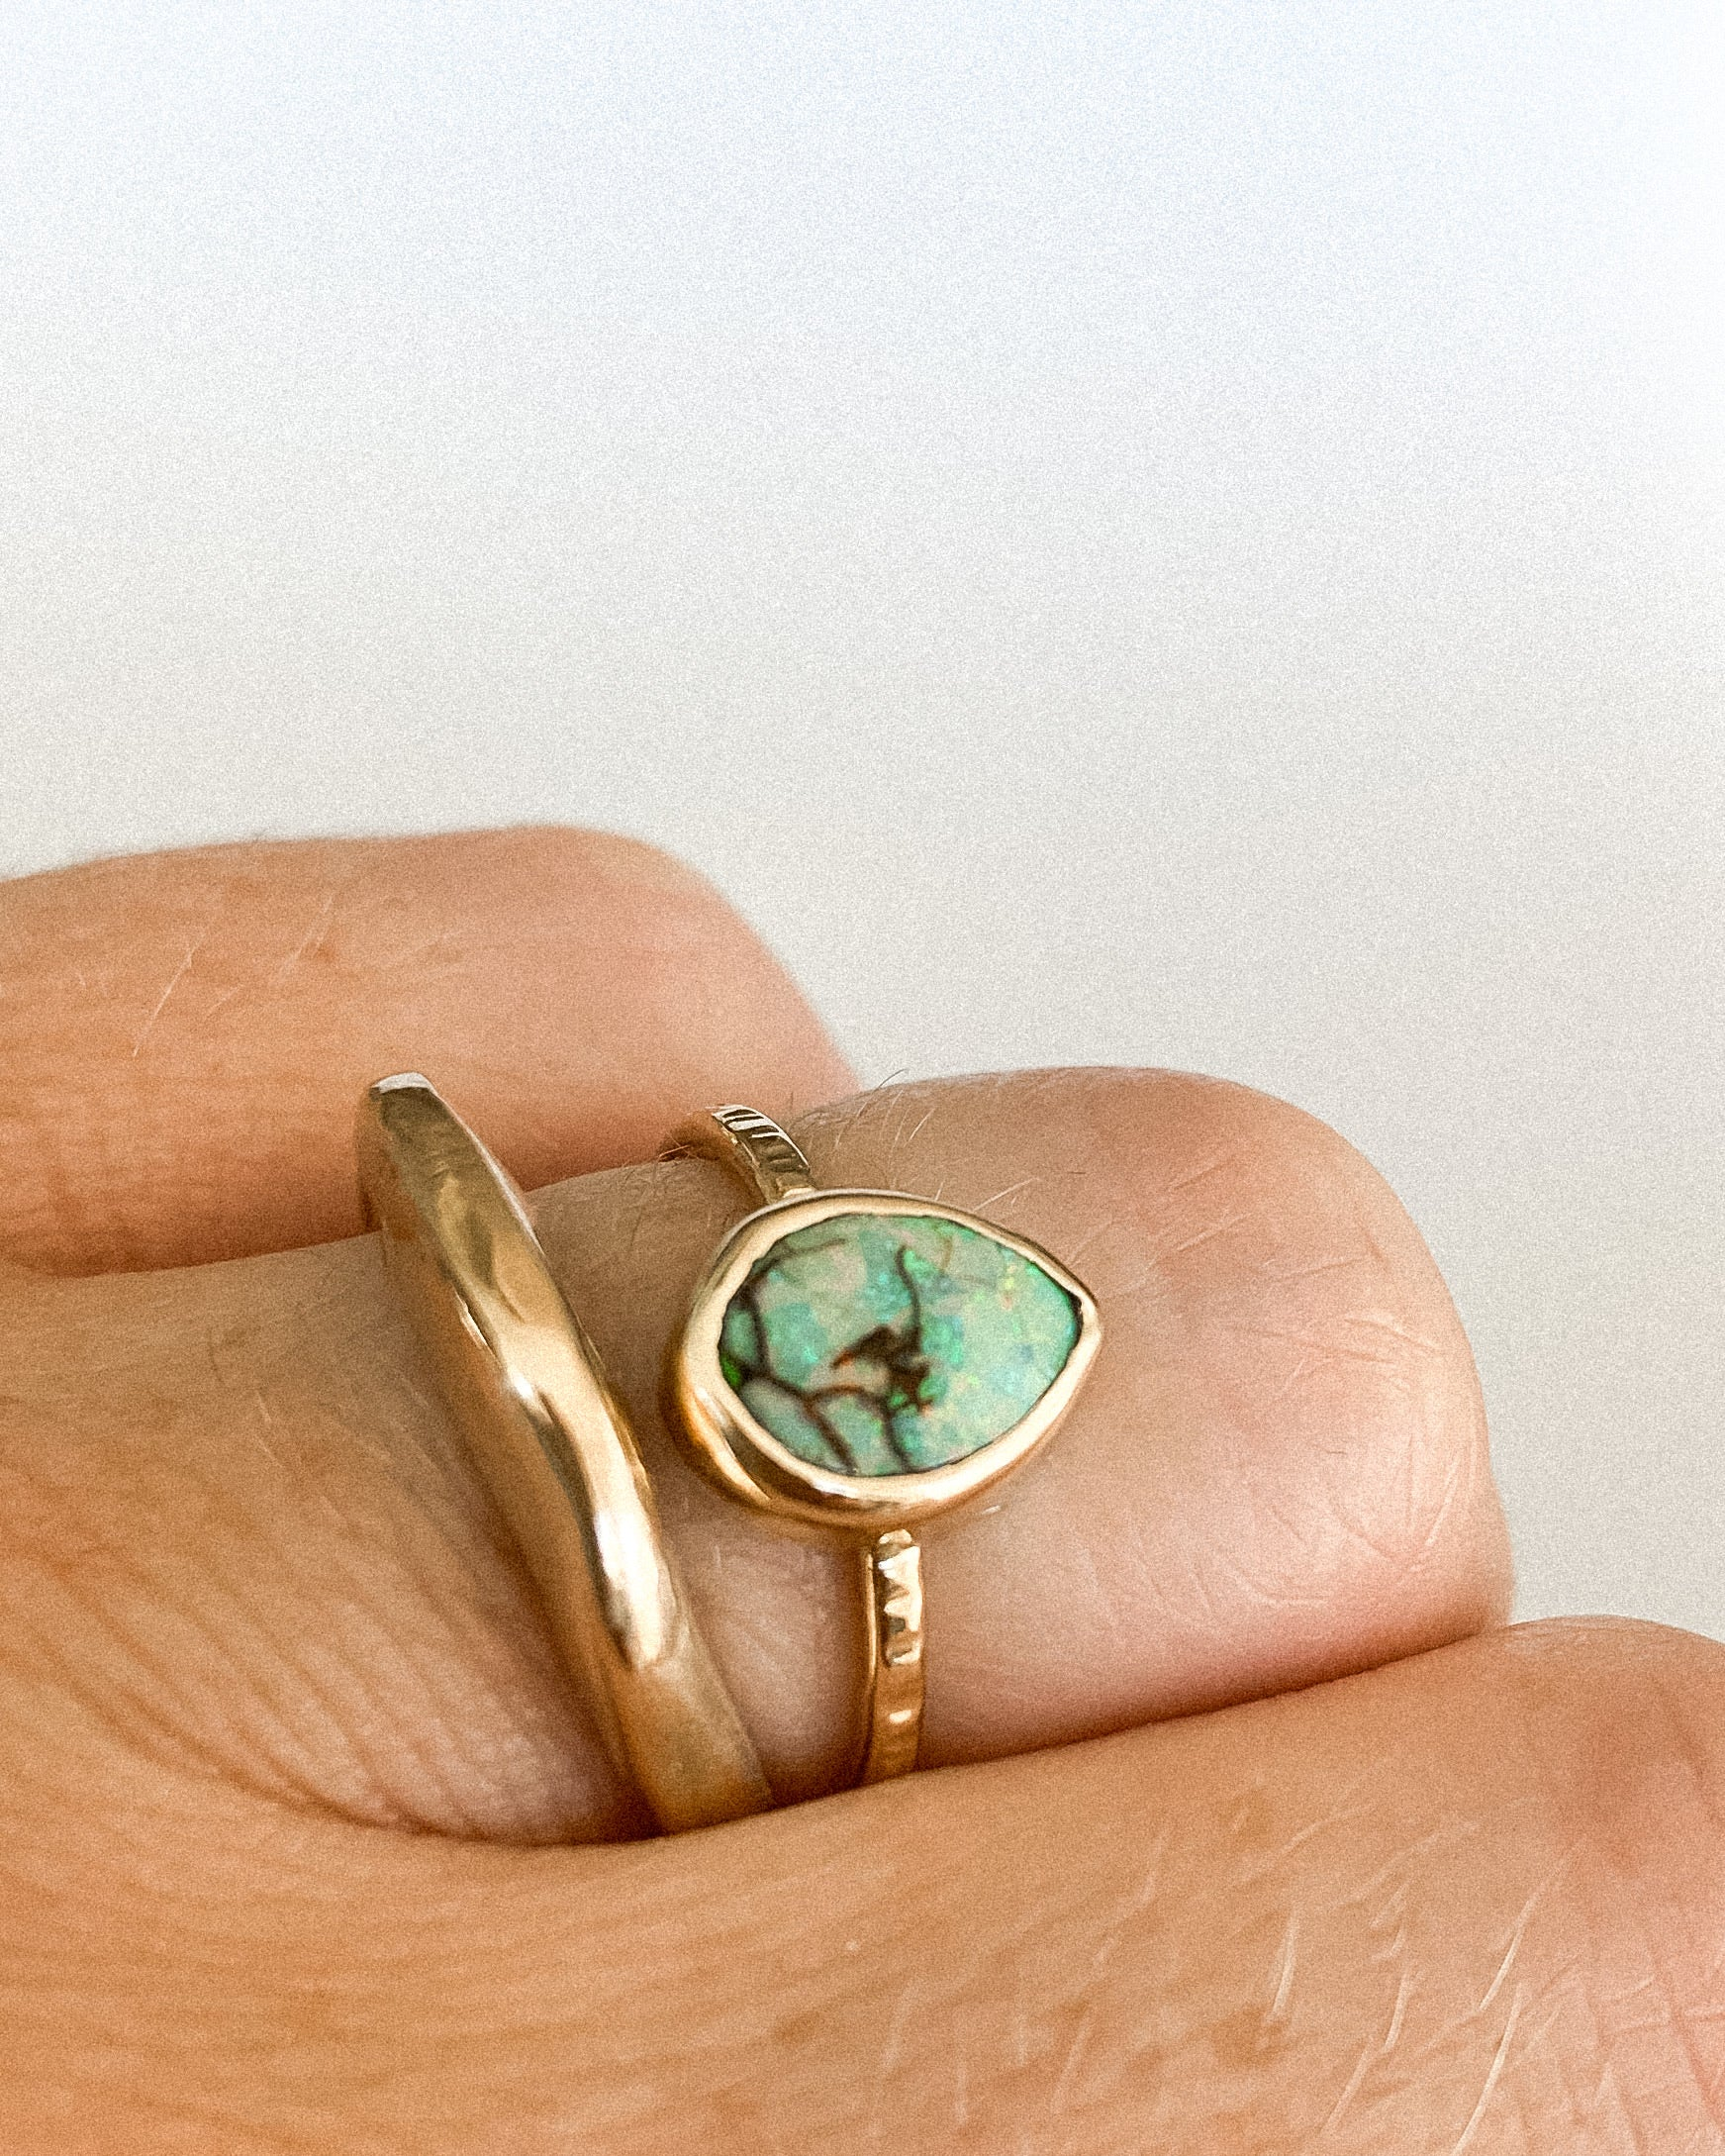 a close up of a finger wearing a gold band ring and a tear drop shaped turquoise ring wrapped in gold